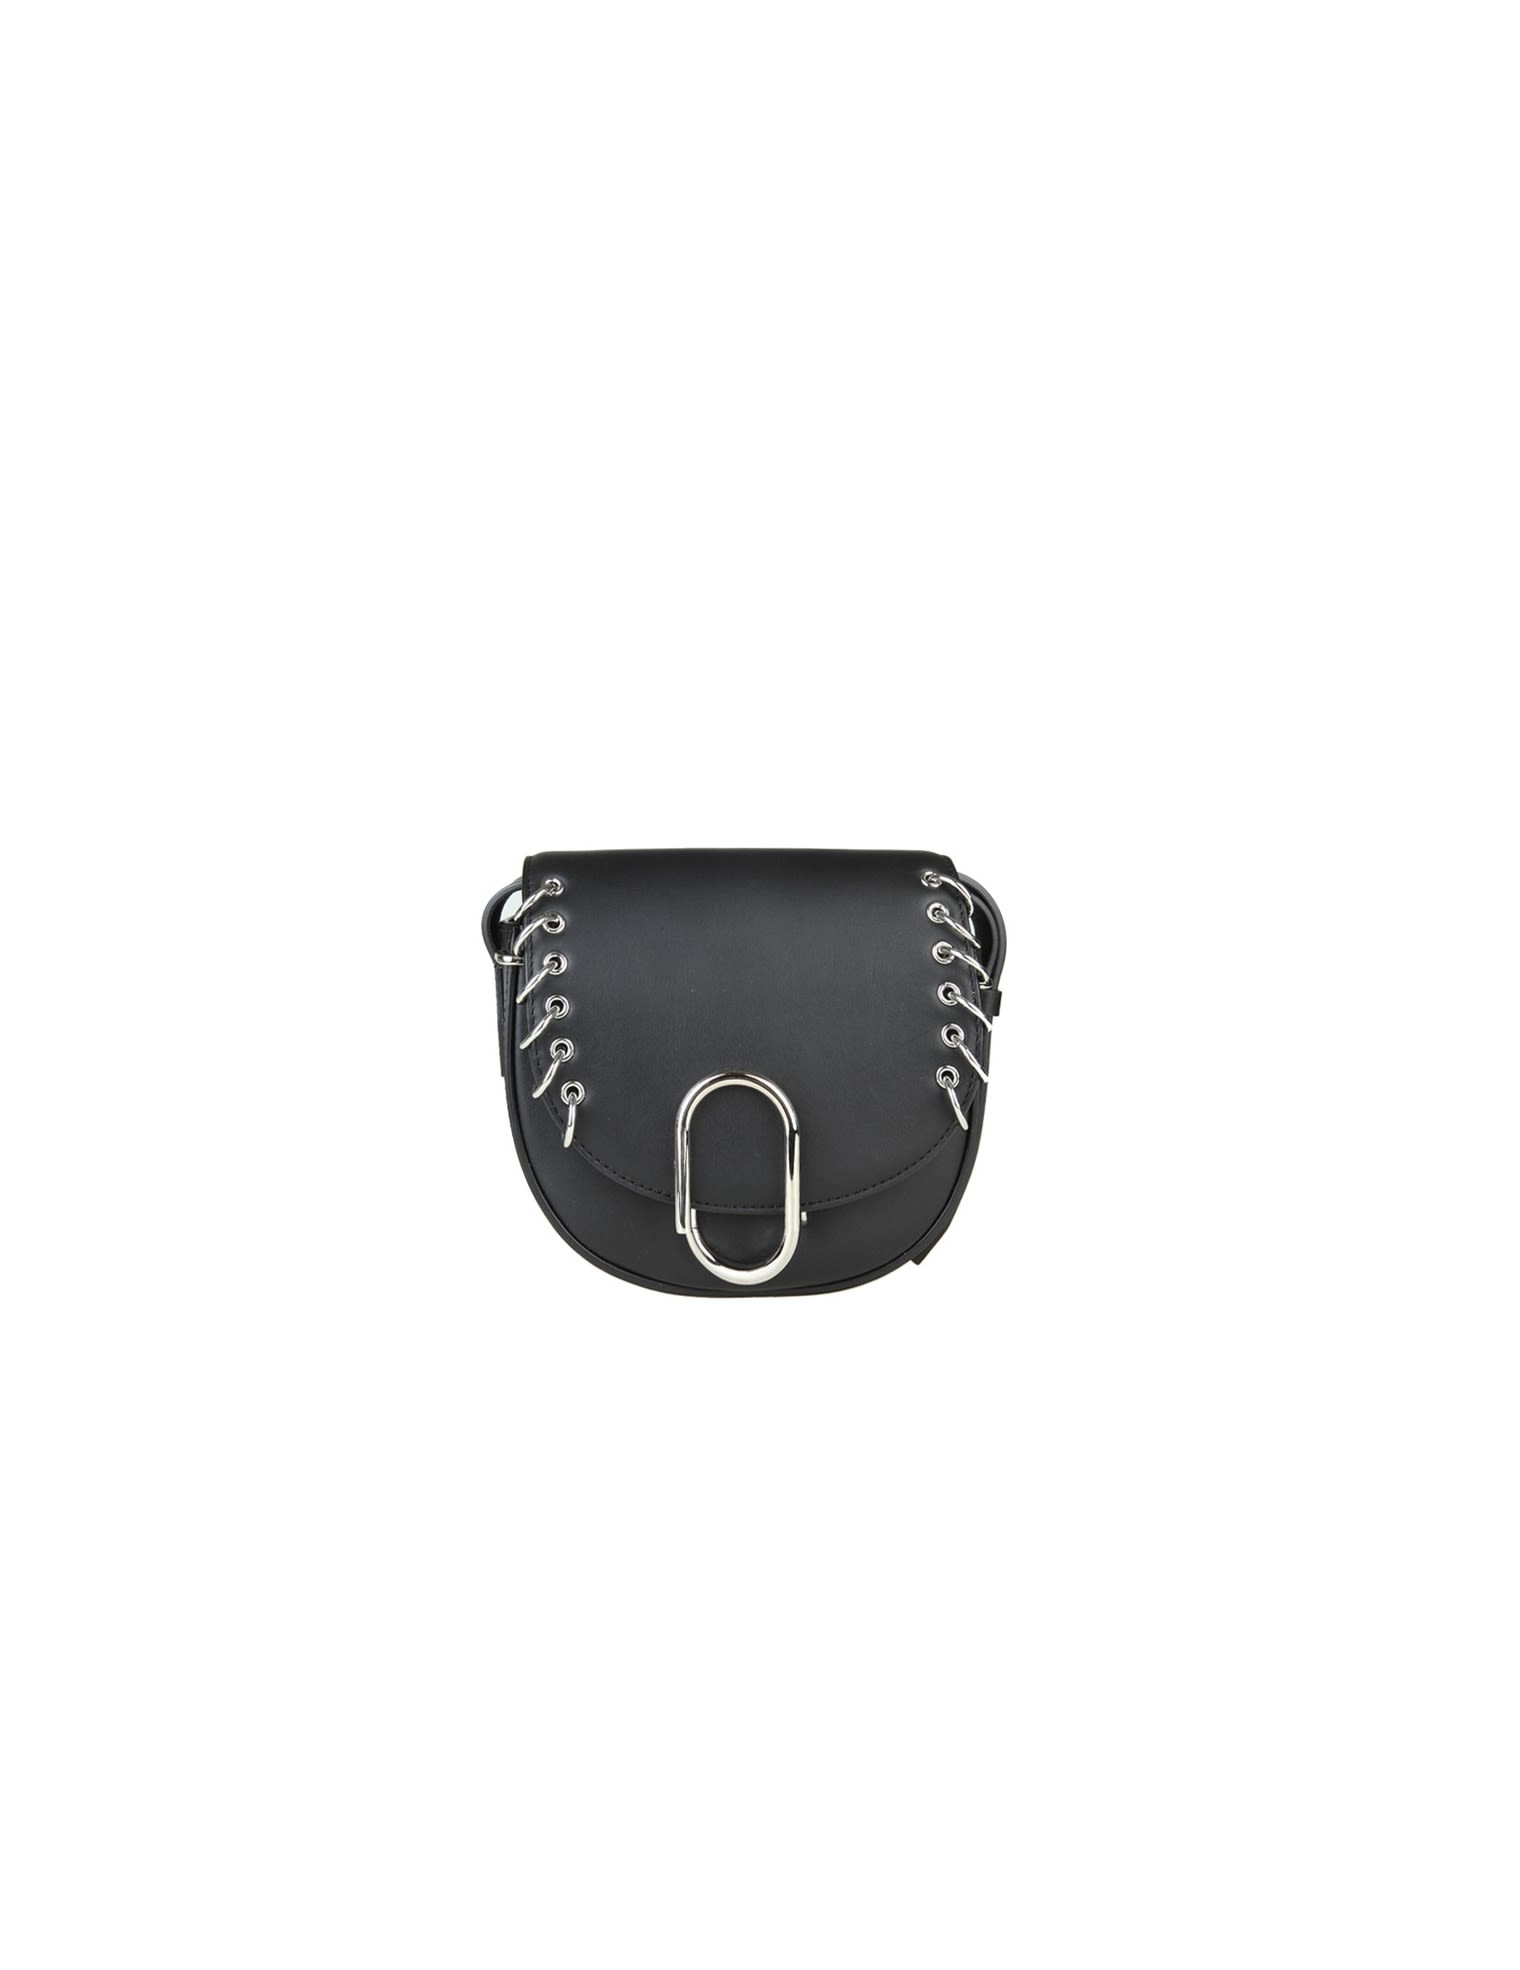 3.1 Phillip Lim Phillip Lim Alix Mini Saddle Crossbody Skin With Piercing  Black Colo bcc64394f